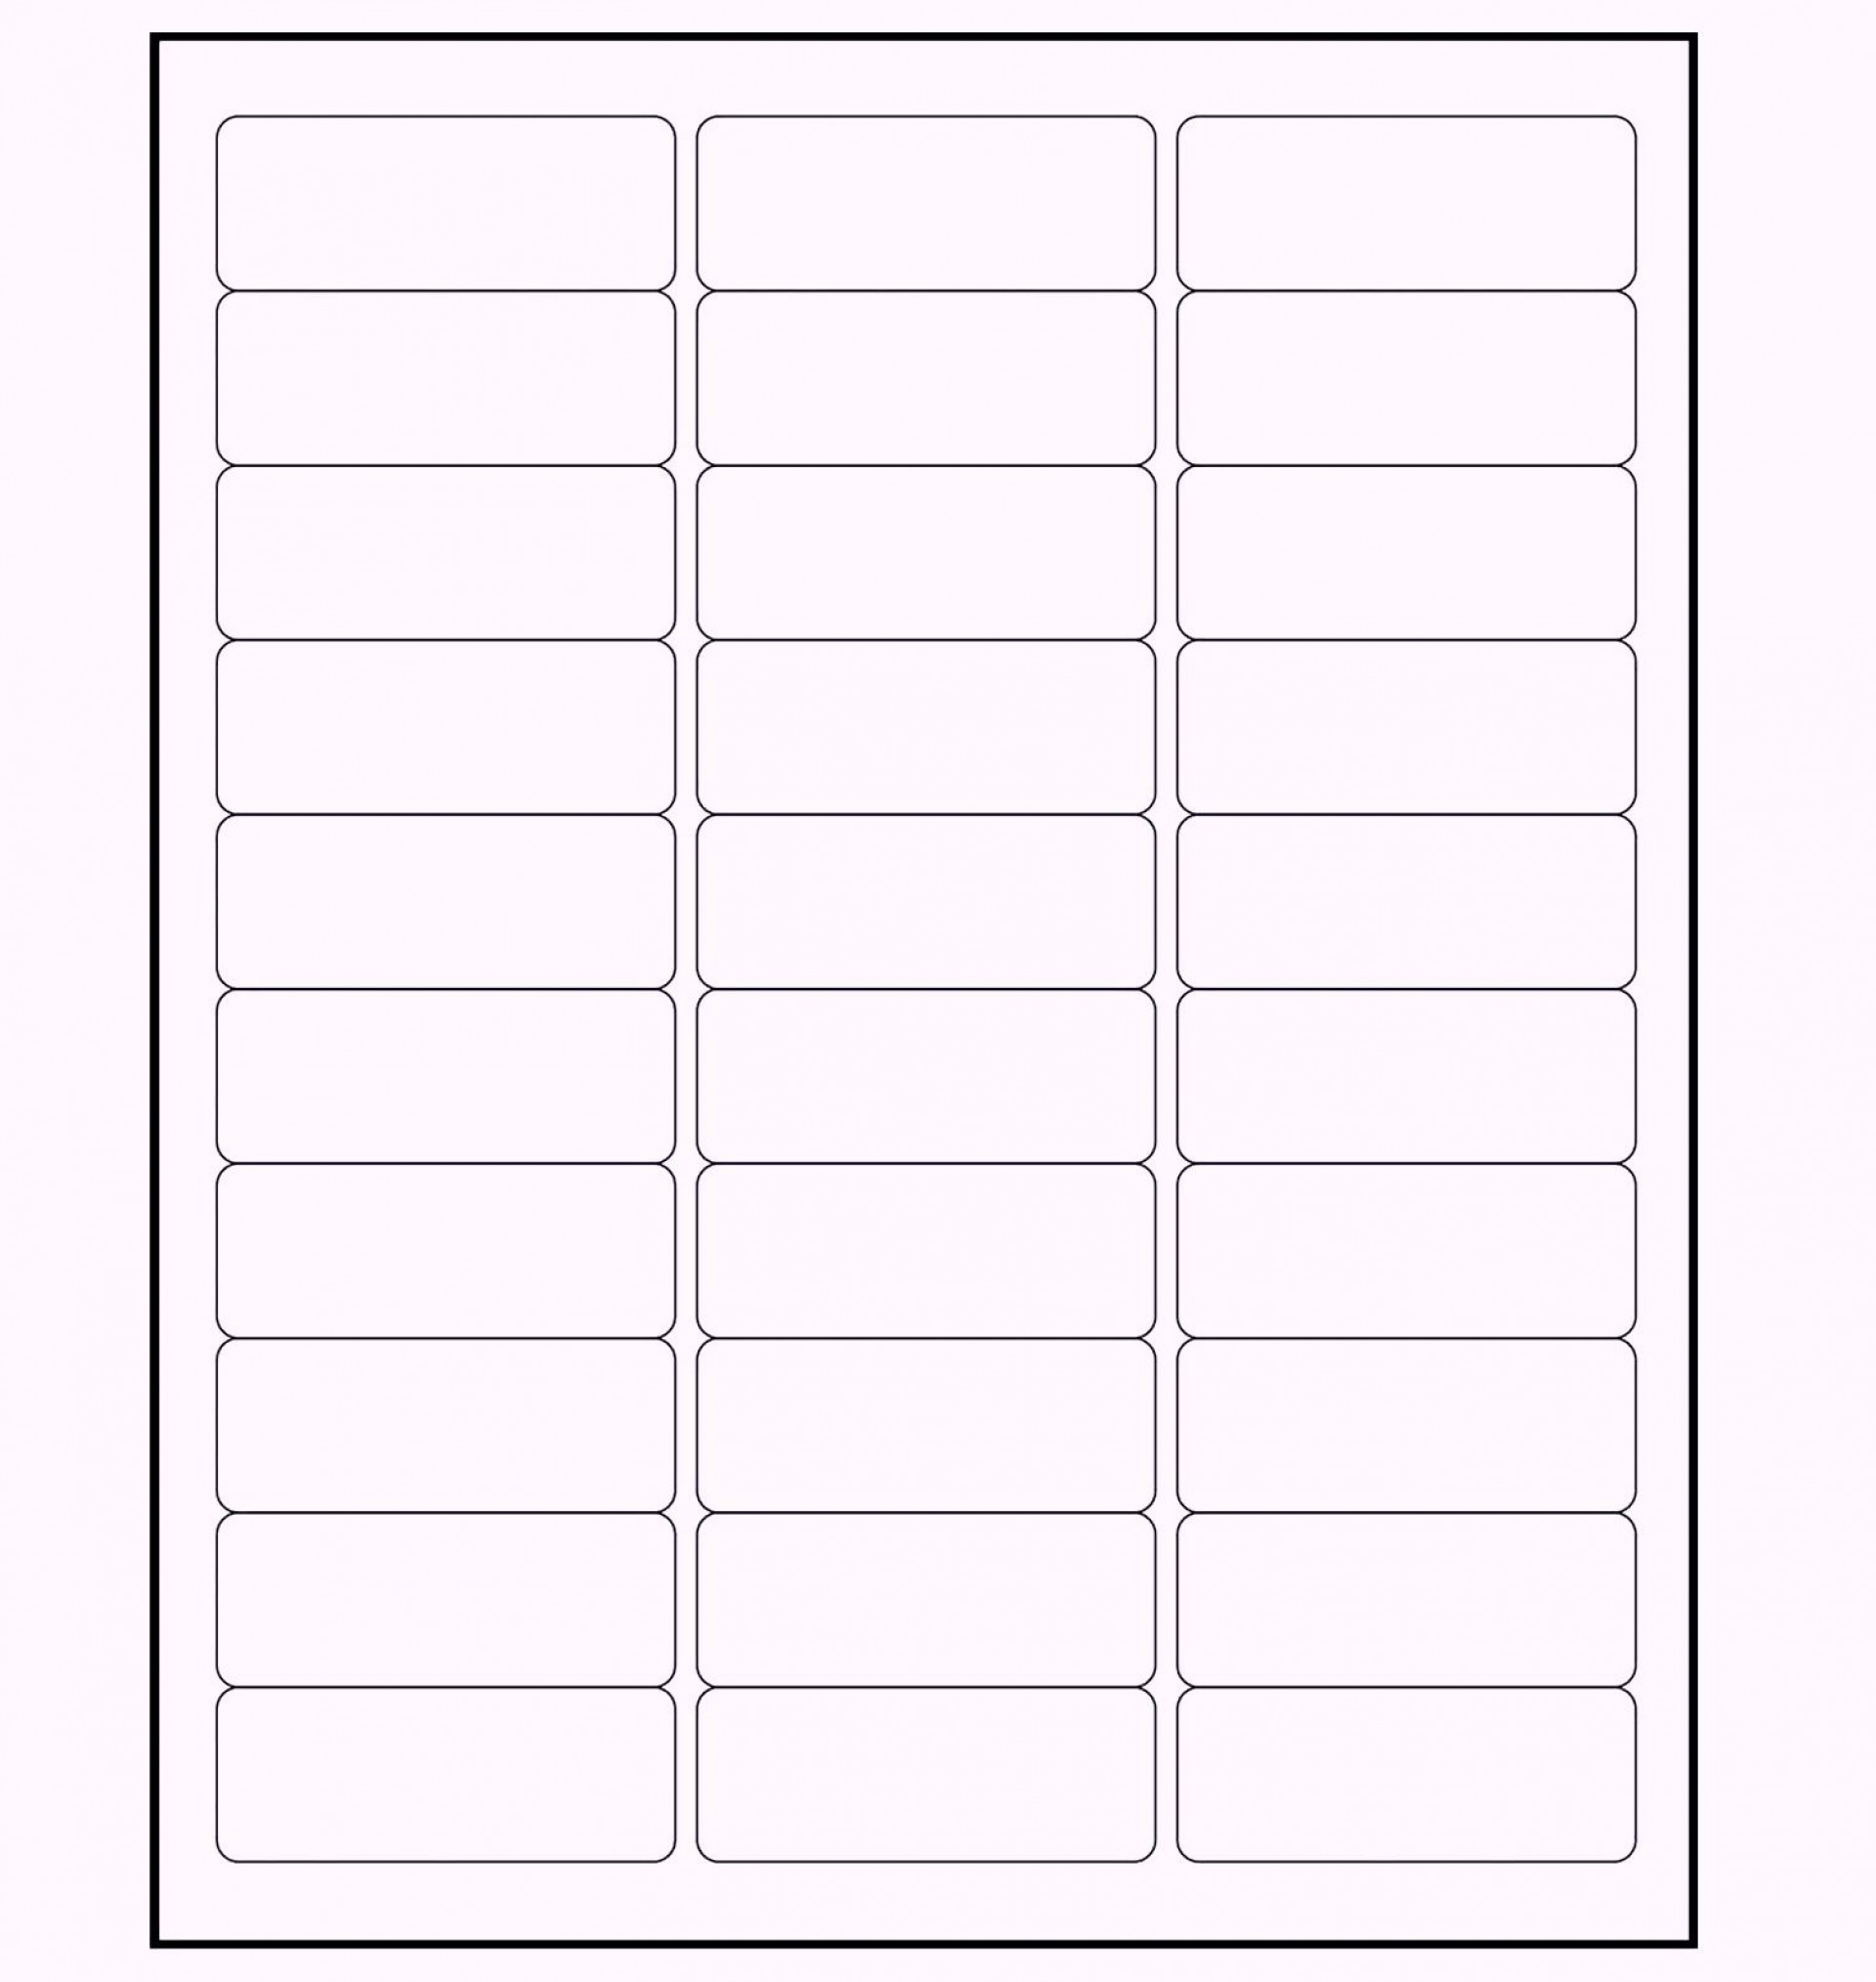 008 Remarkable Label Template For Word Concept  Avery 8 Per Sheet Free Circle A41920